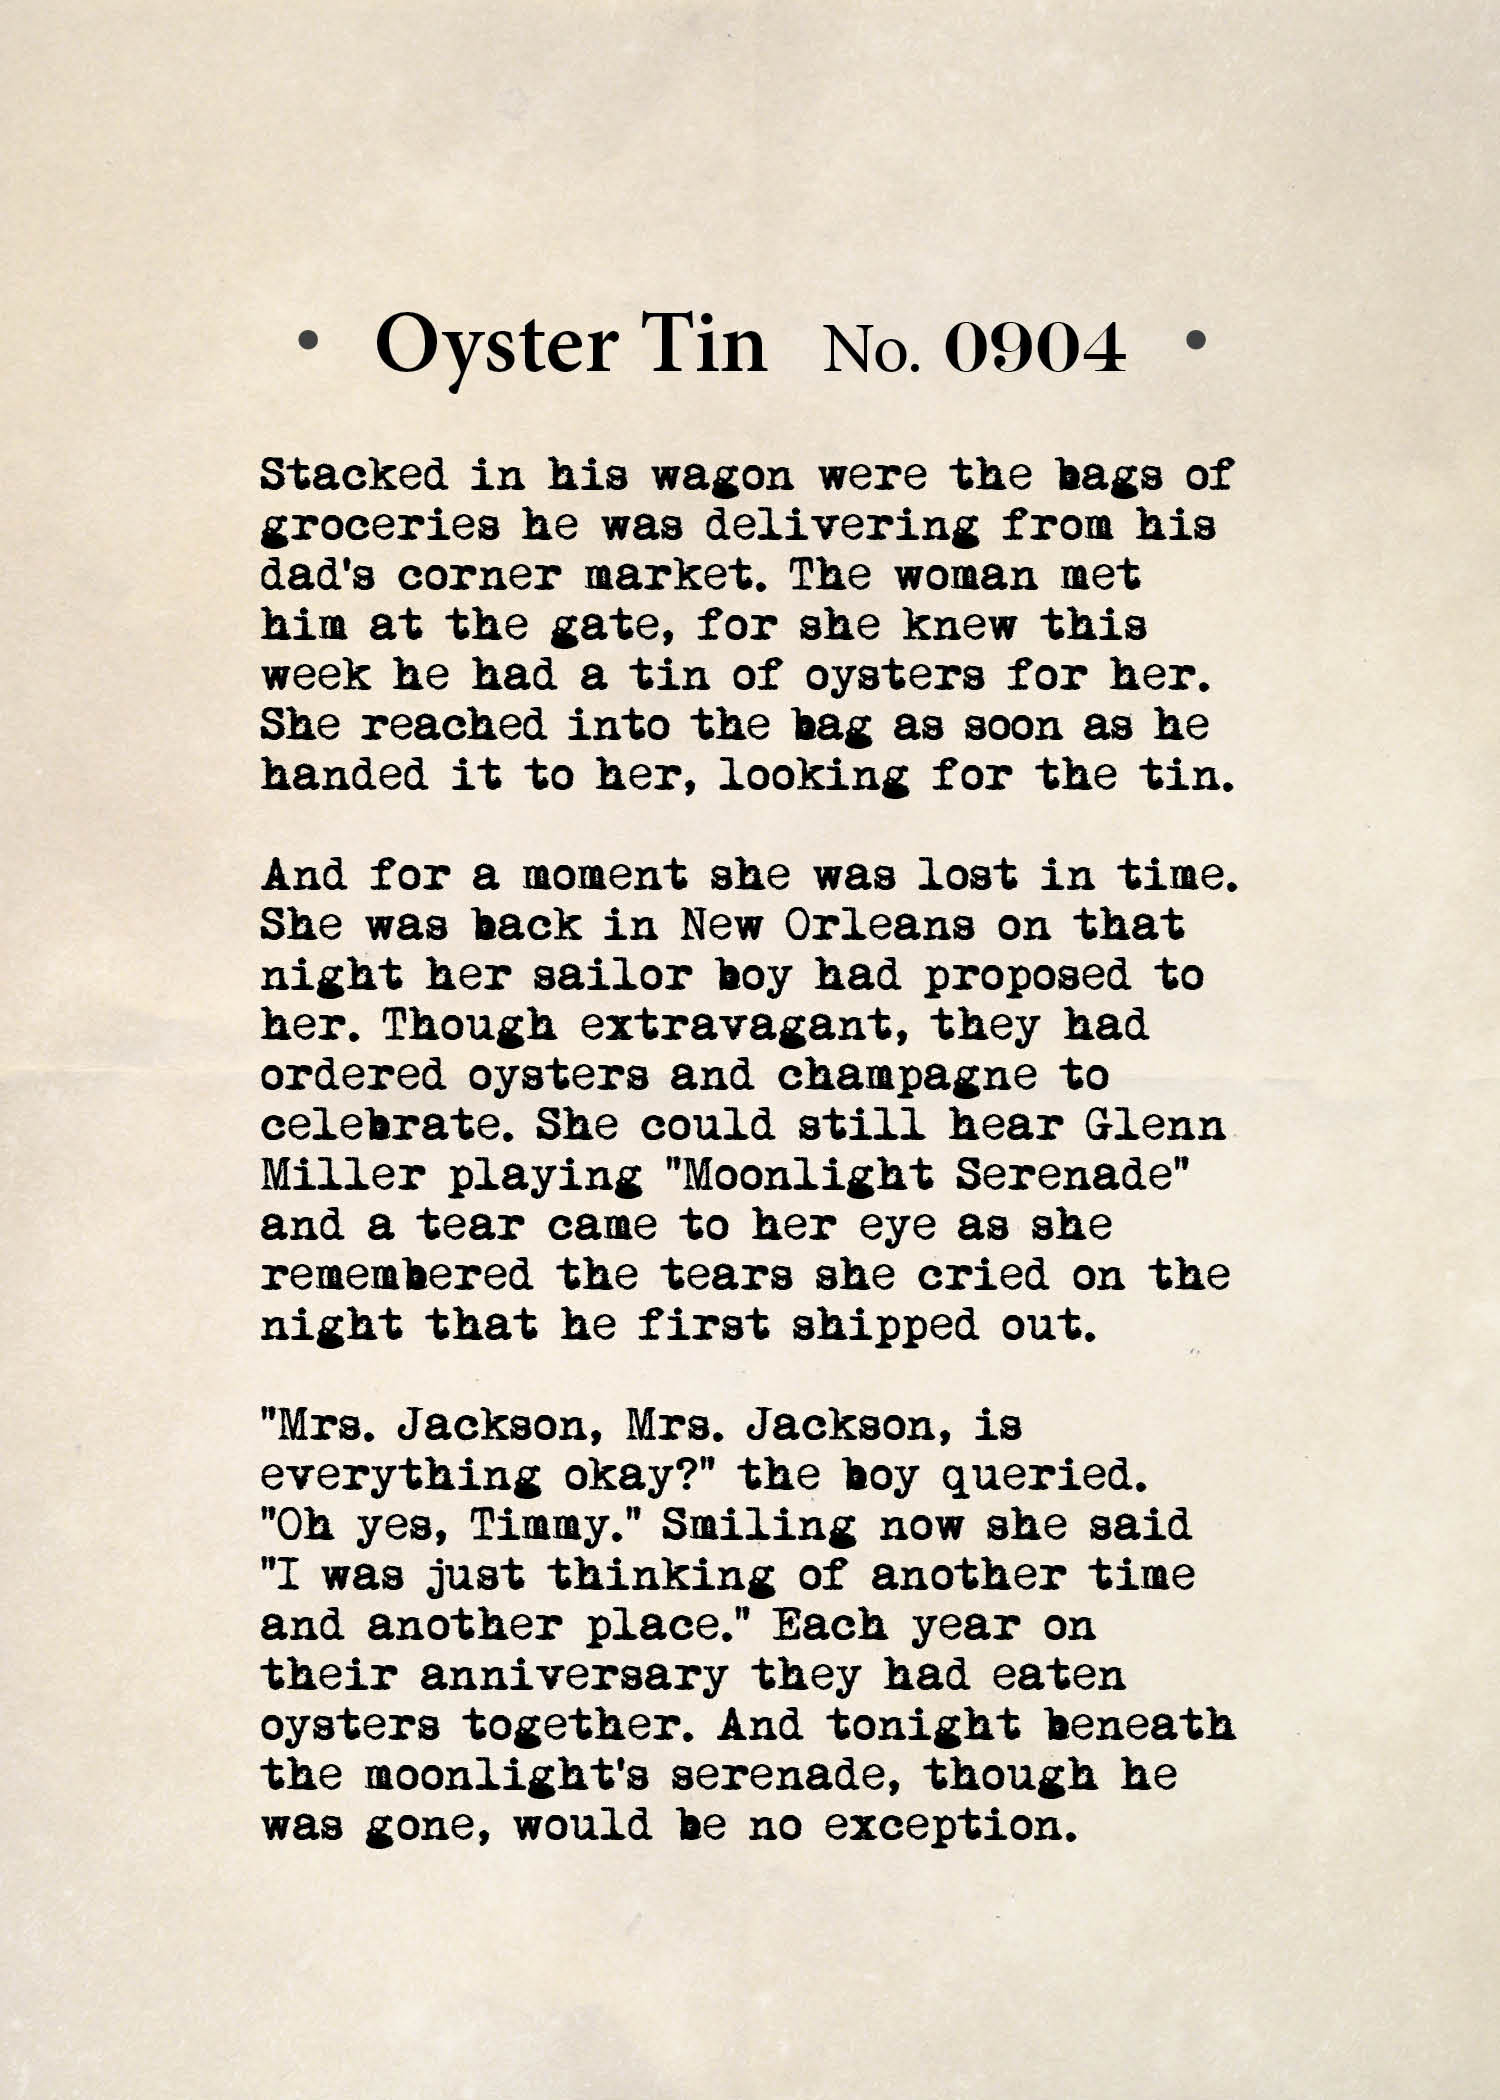 Oyster Tin No. 0904